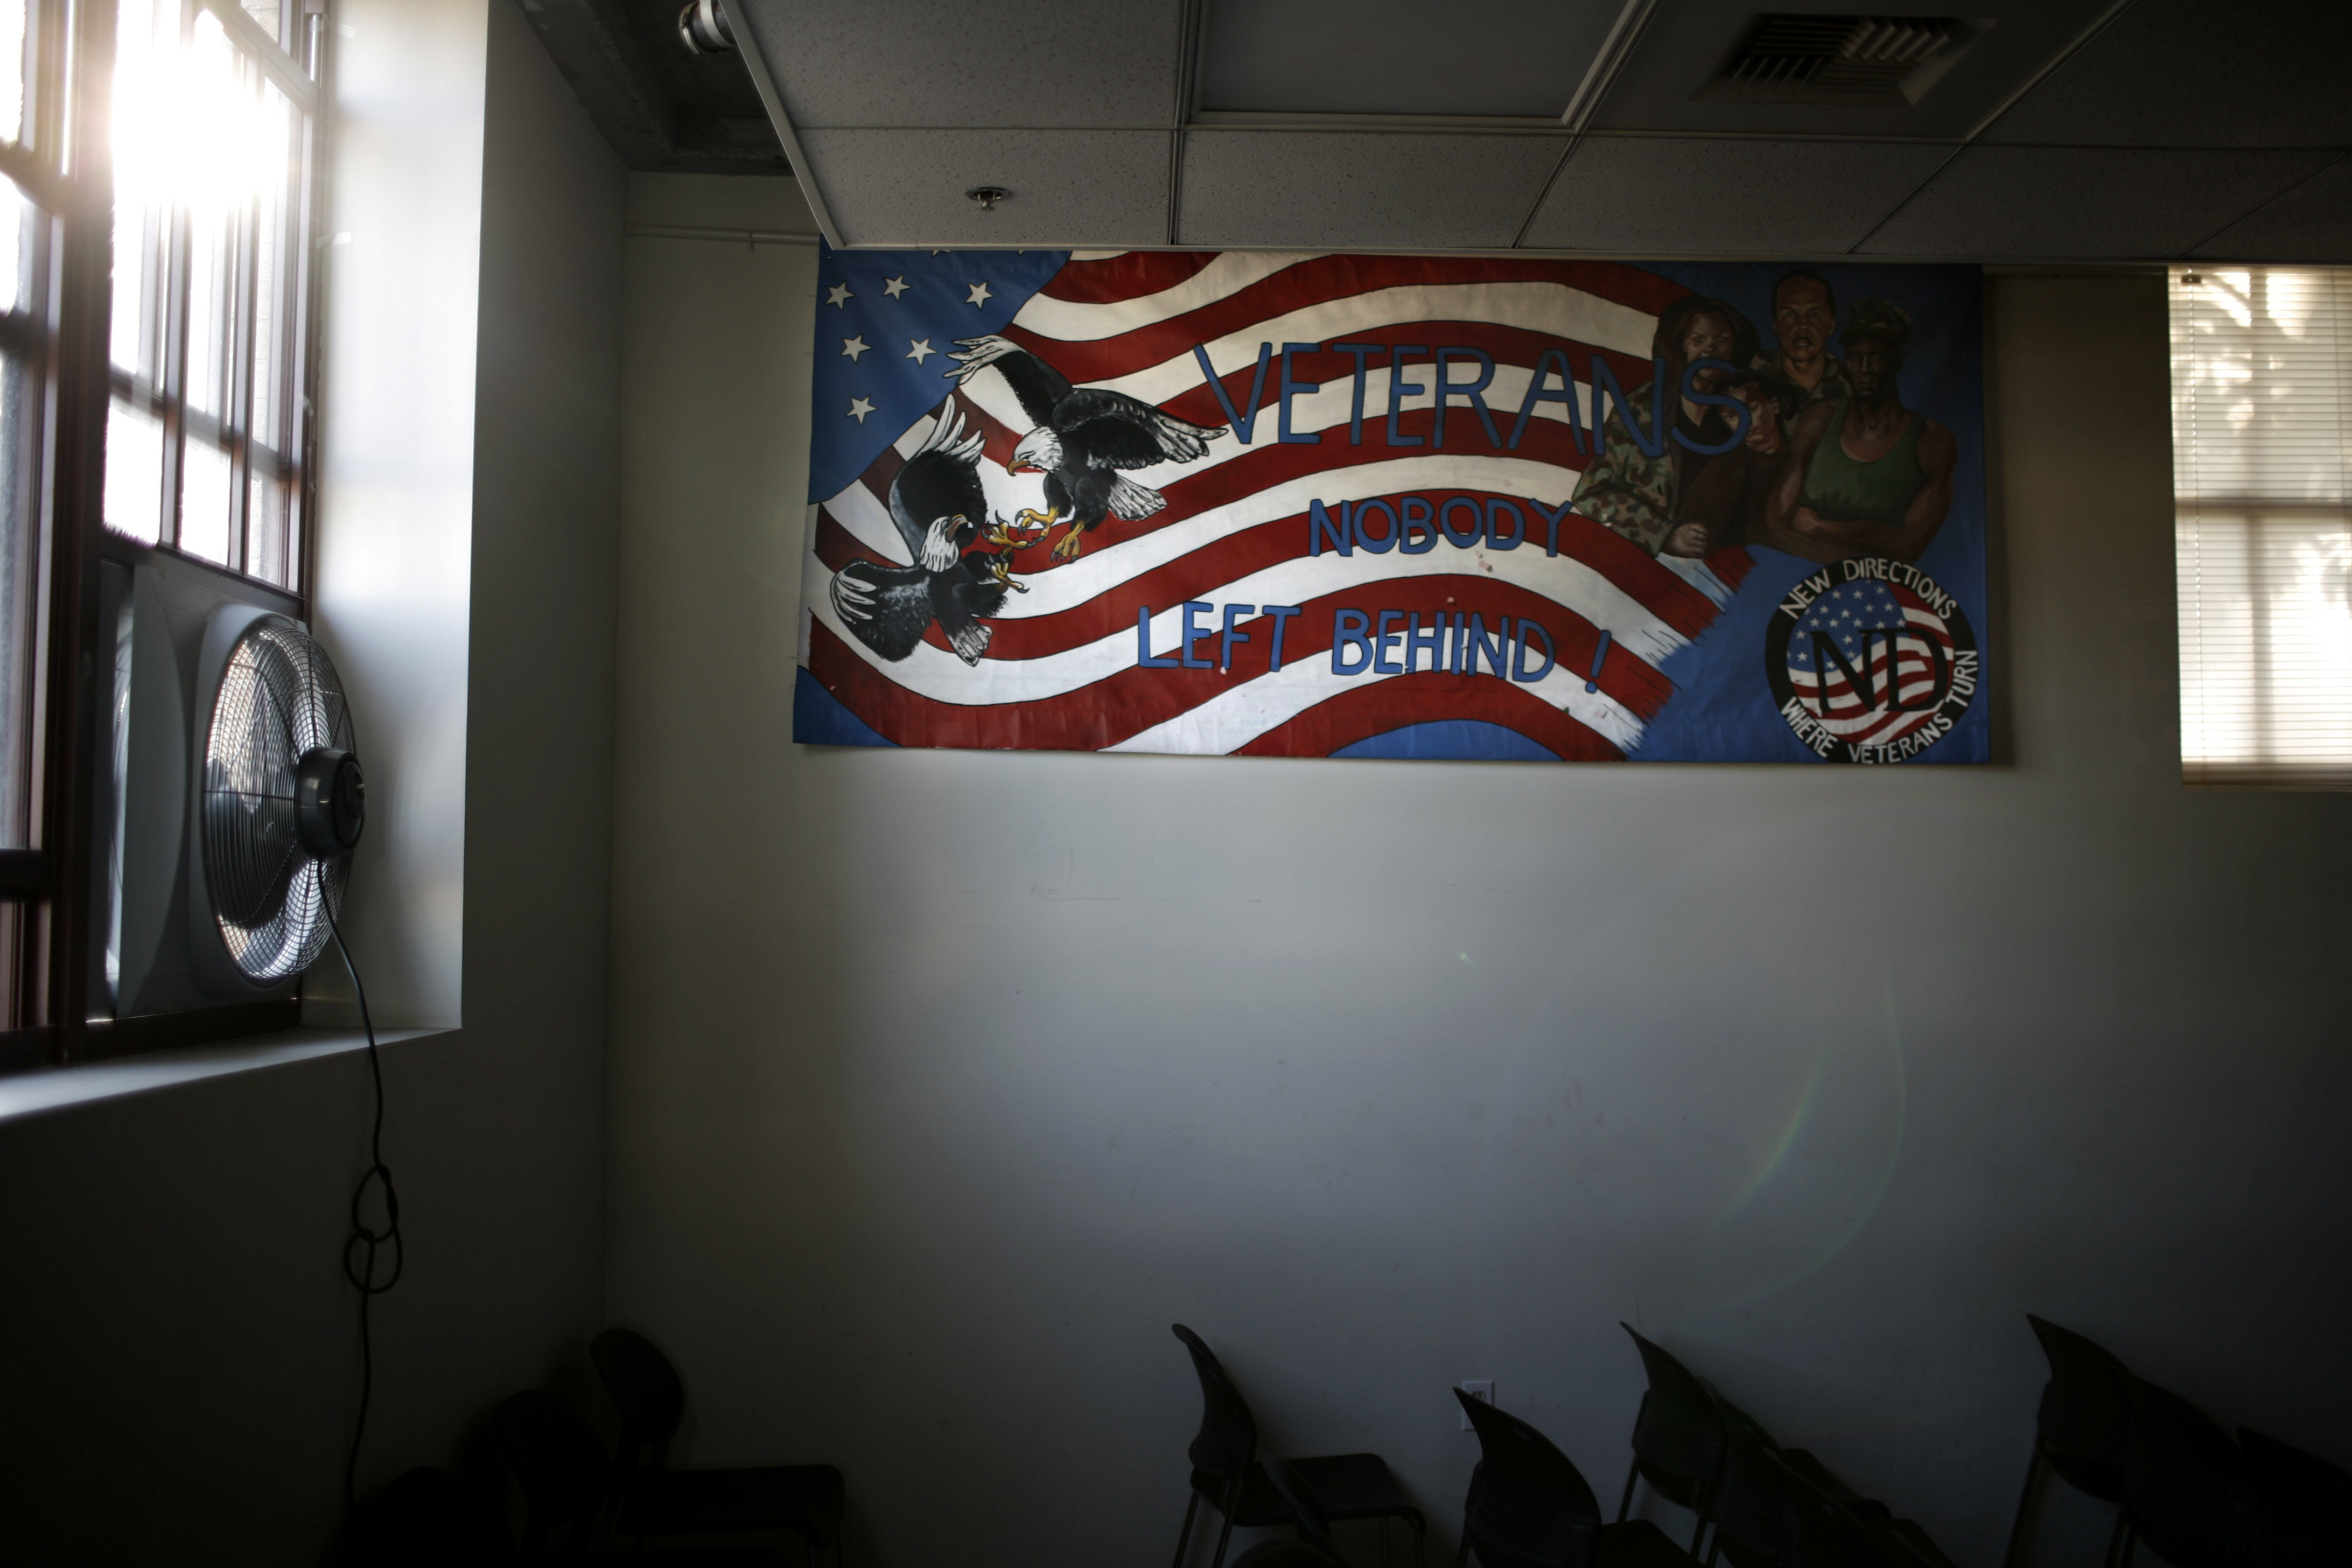 New Directions, a nonprofit substance abuse treatment program for homeless veterans